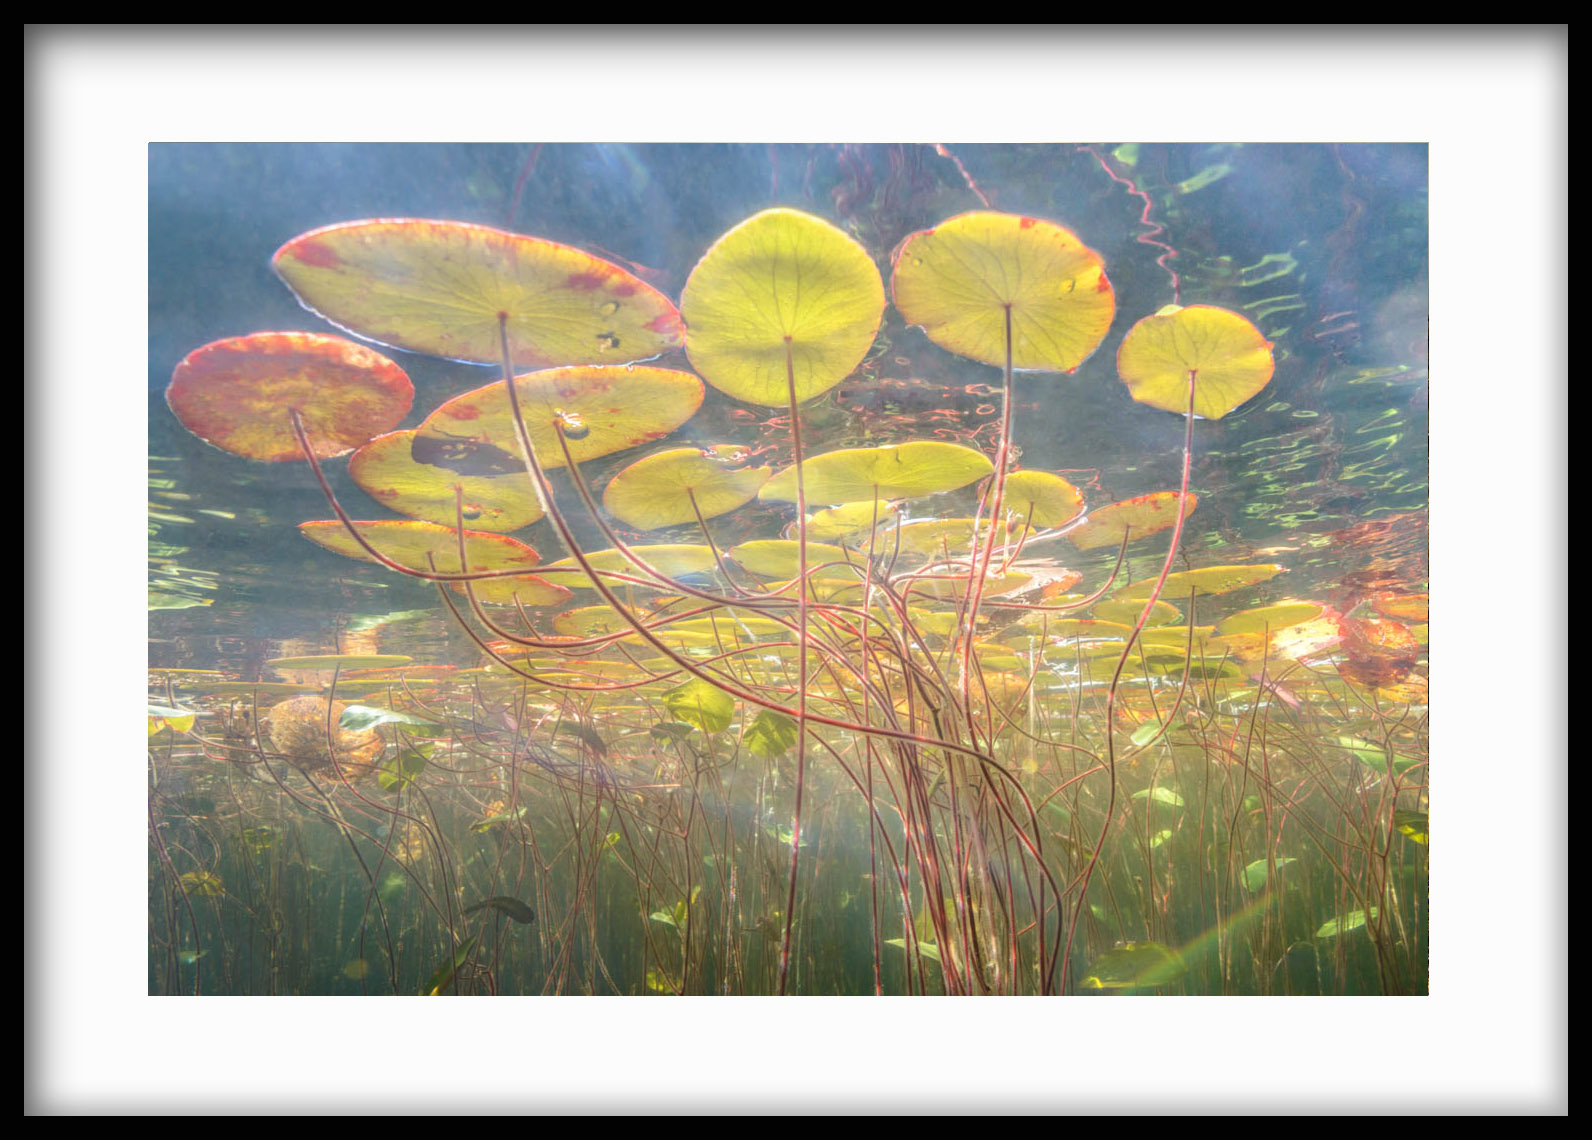 impressionistic underwater image like Monet's water lilies